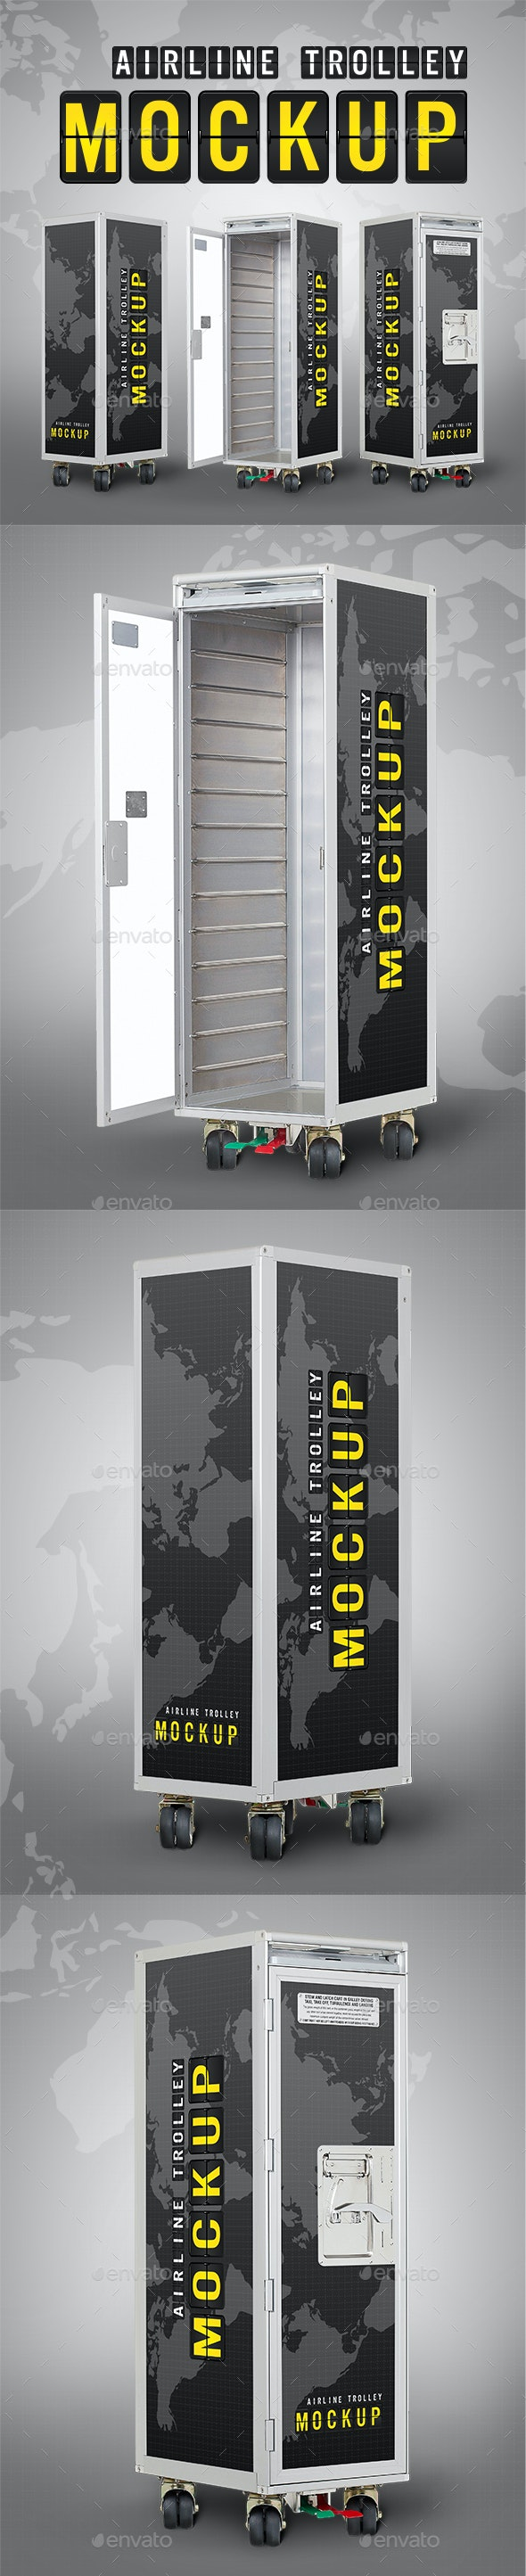 Airline Trolley Mockup - Product Mock-Ups Graphics